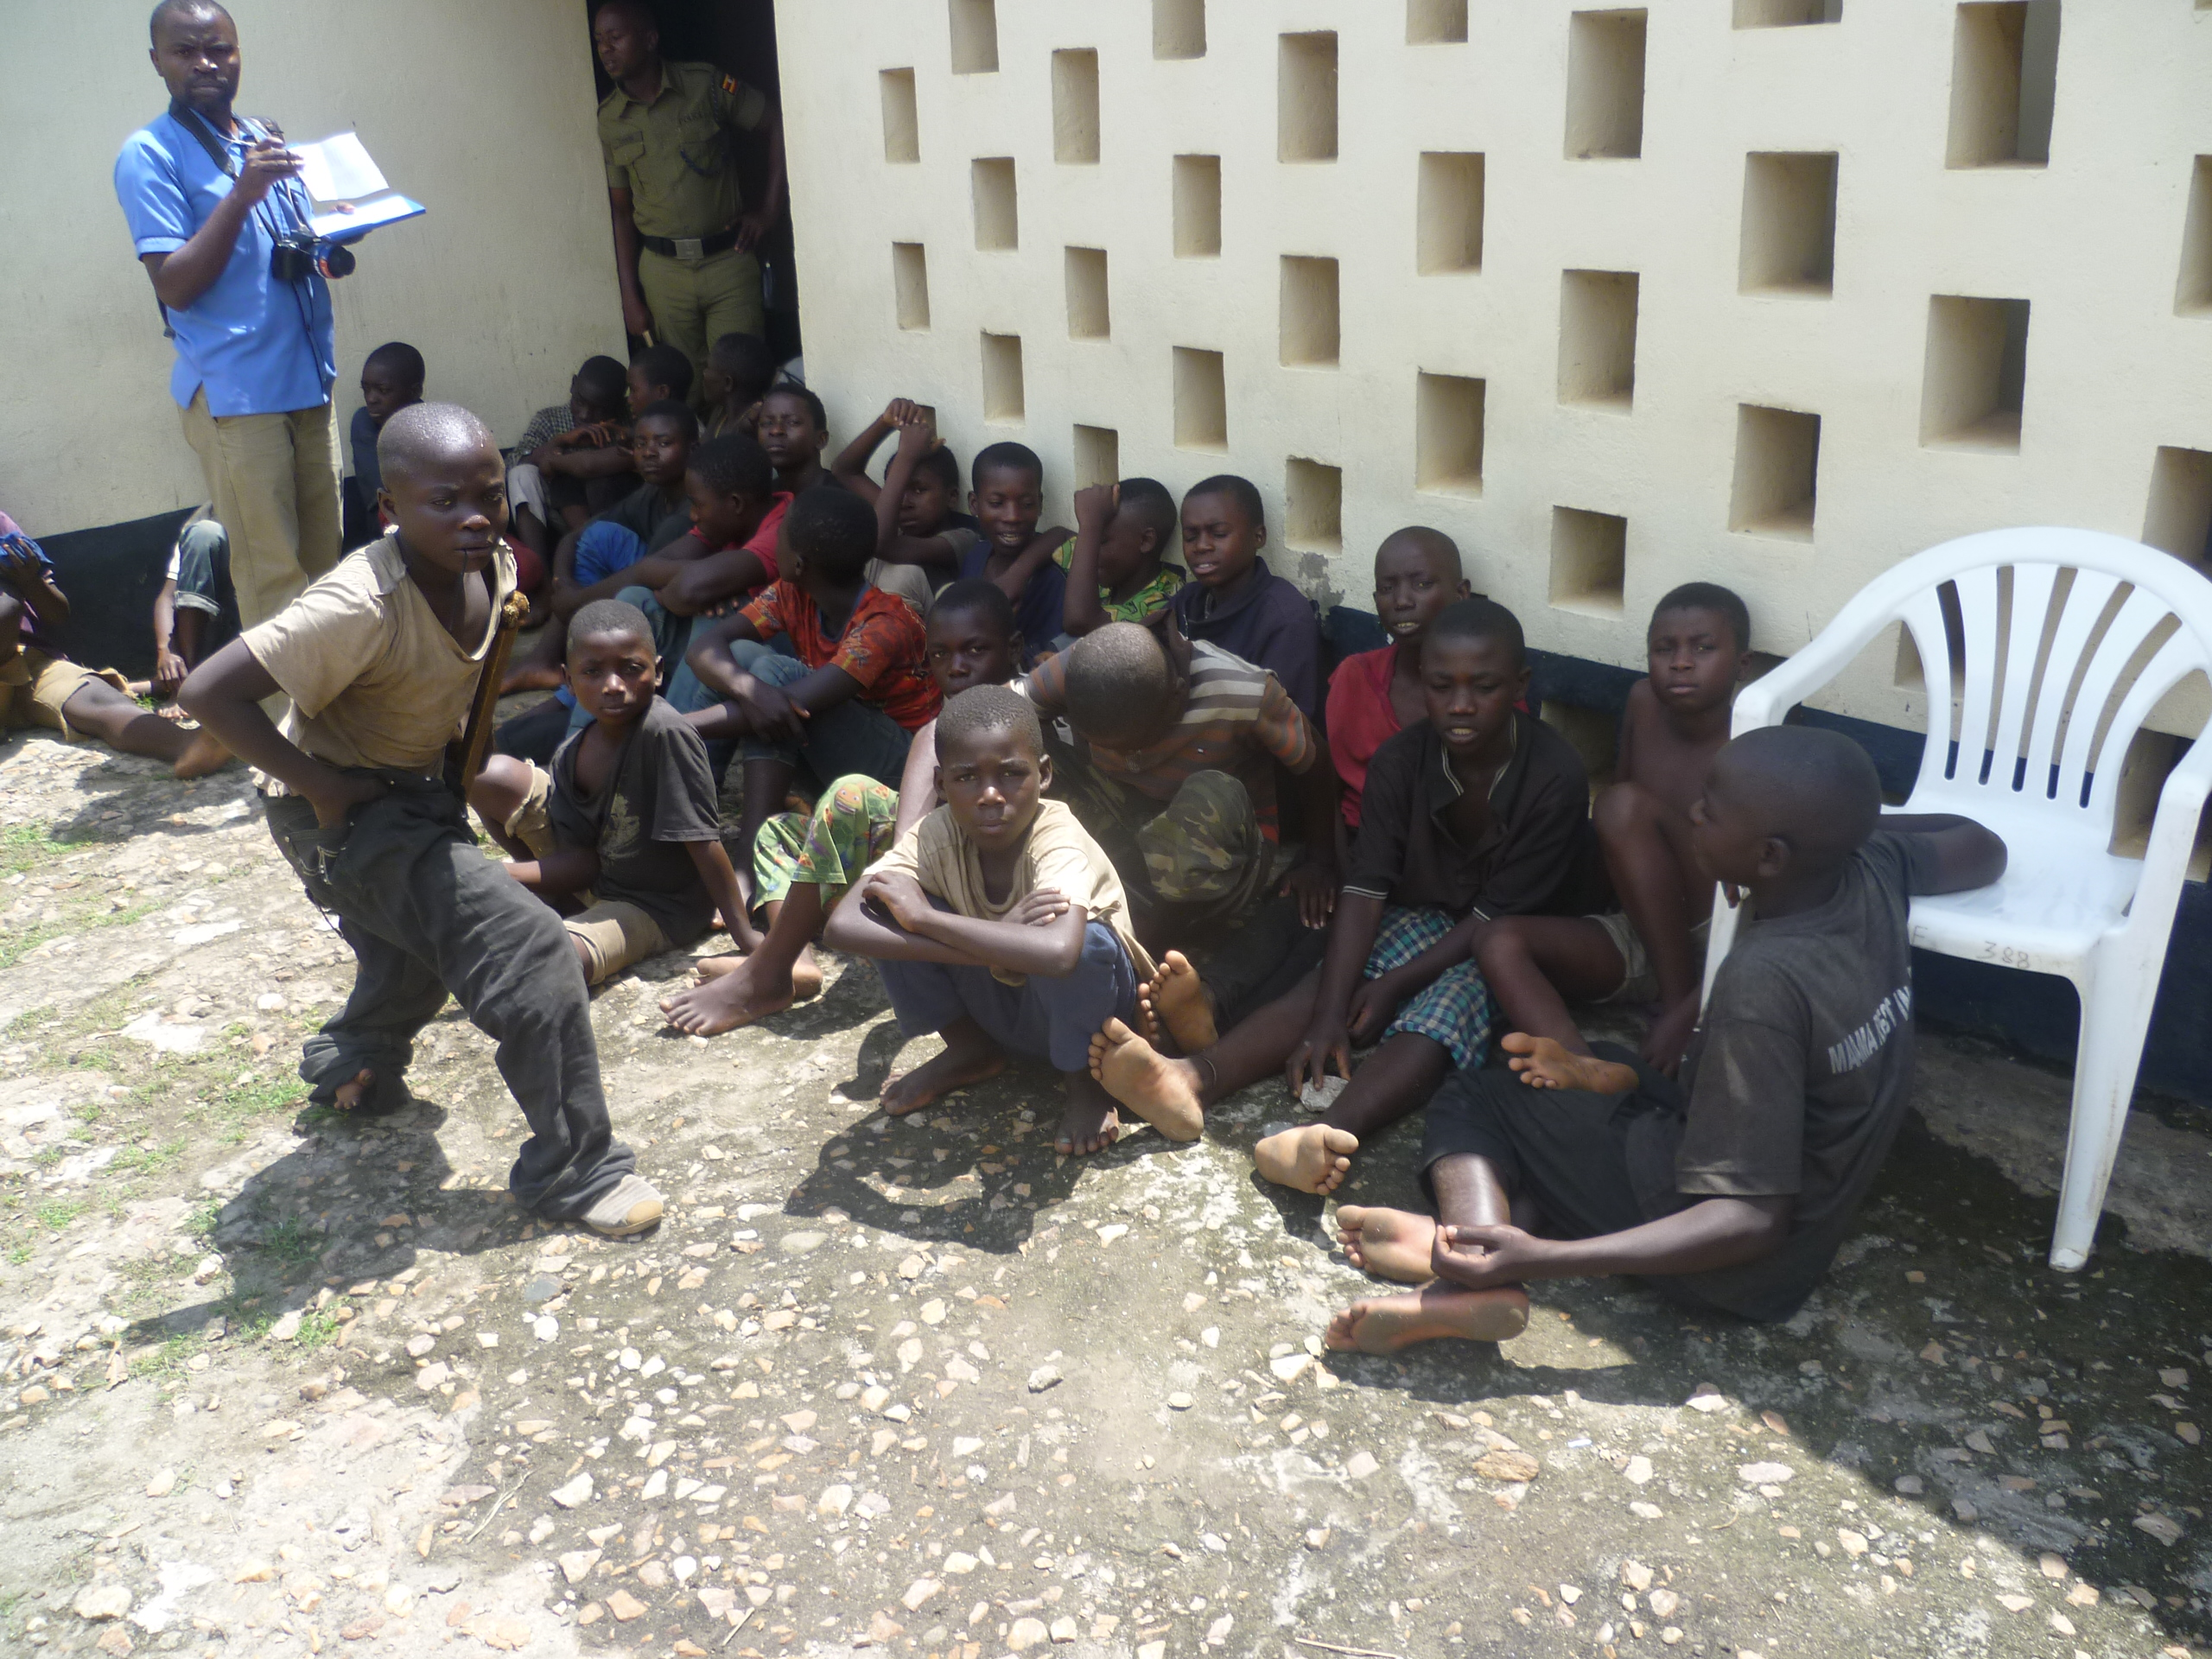 26 Street children (juveniles) rounded up by police, now in custody in Kasese